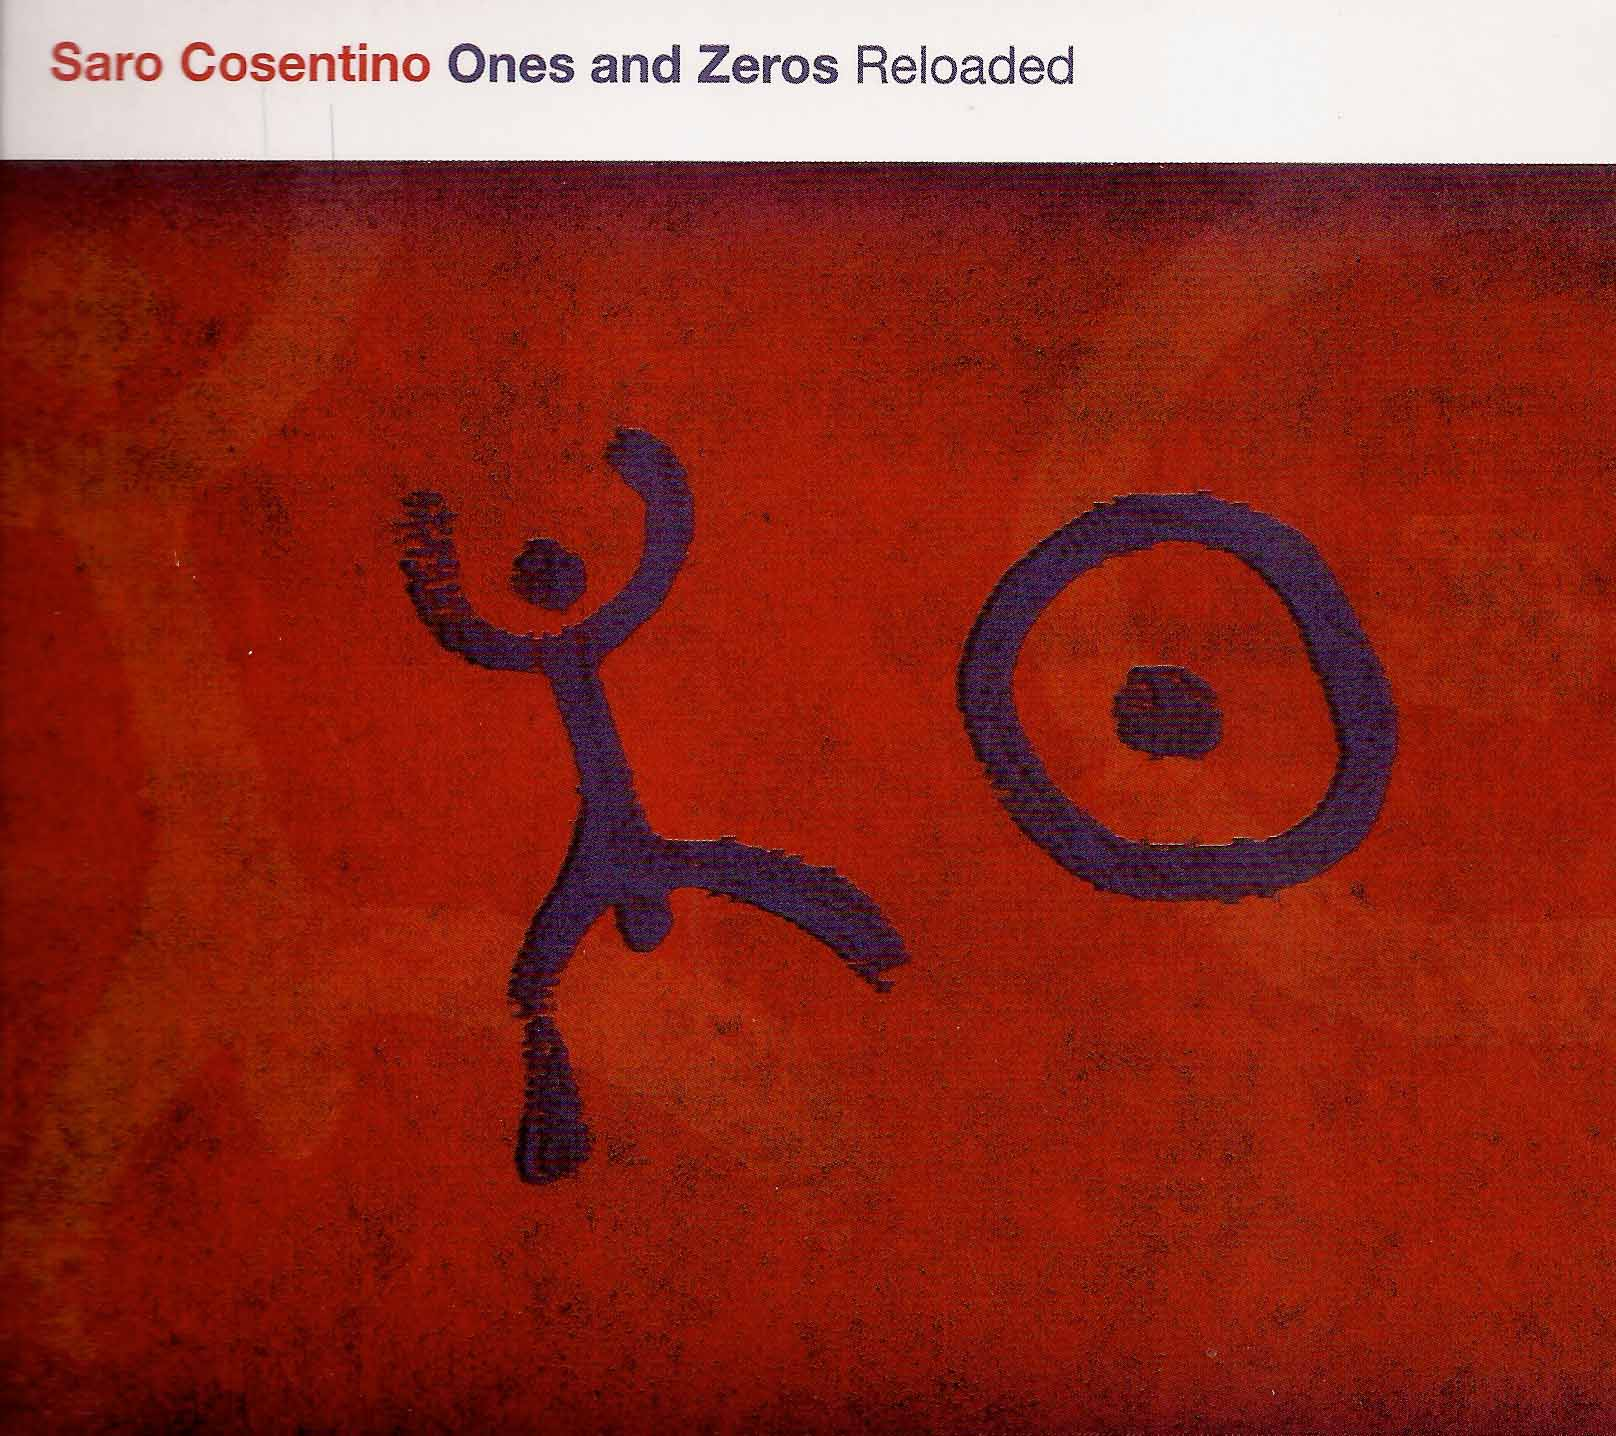 COSENTINO SARO - ONES AND ZEROS RELOADED (LP)